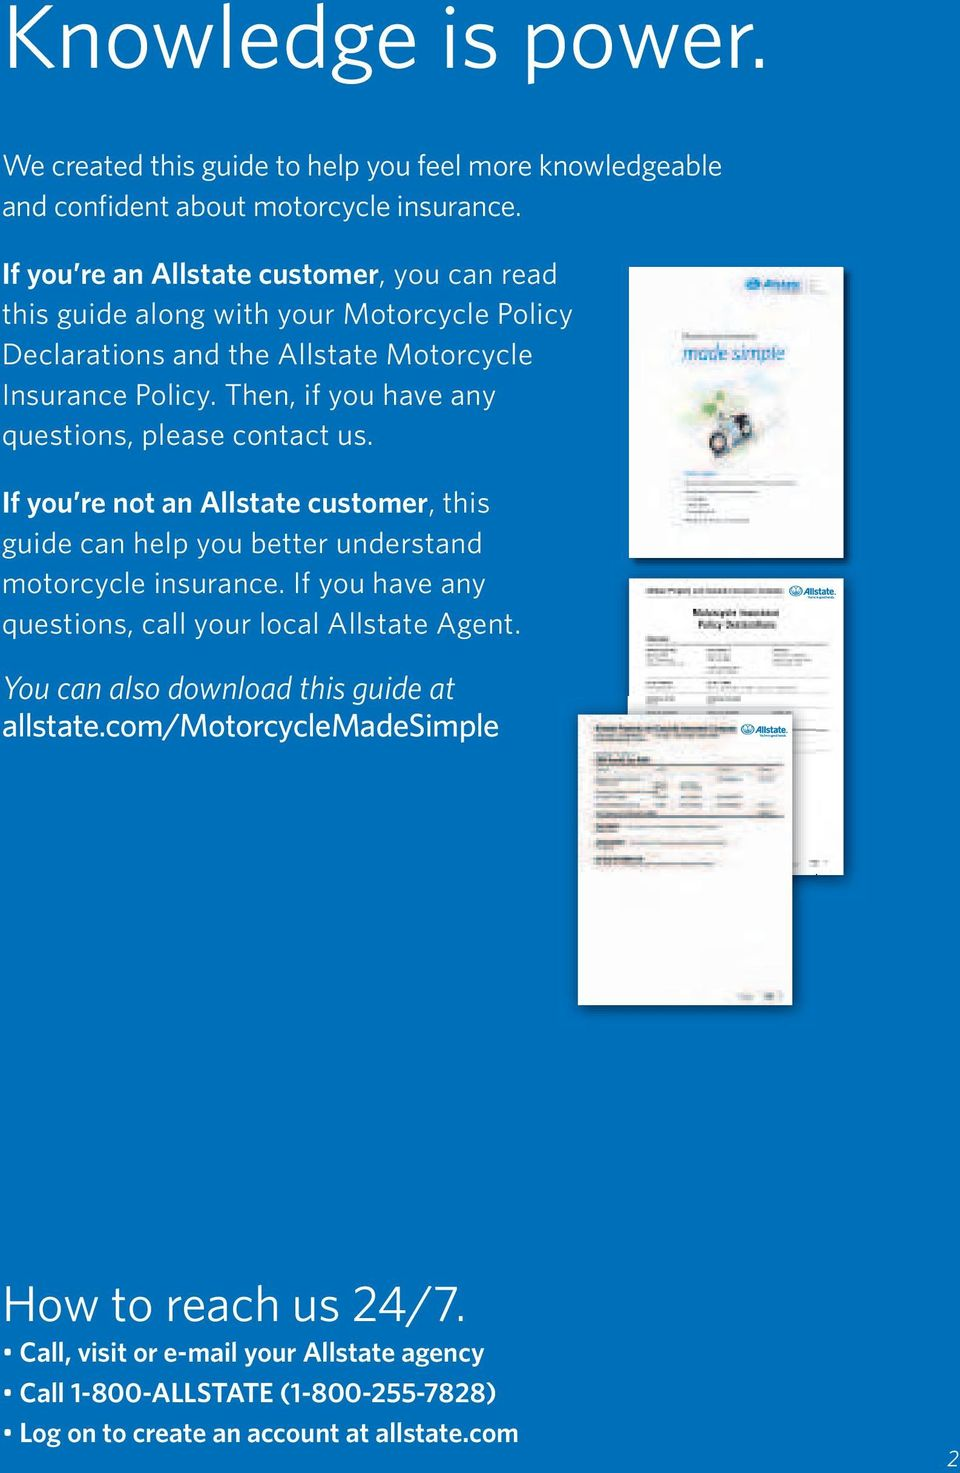 Then, if you have any questions, please contact us. If you re not an Allstate customer, this guide can help you better understand motorcycle insurance.